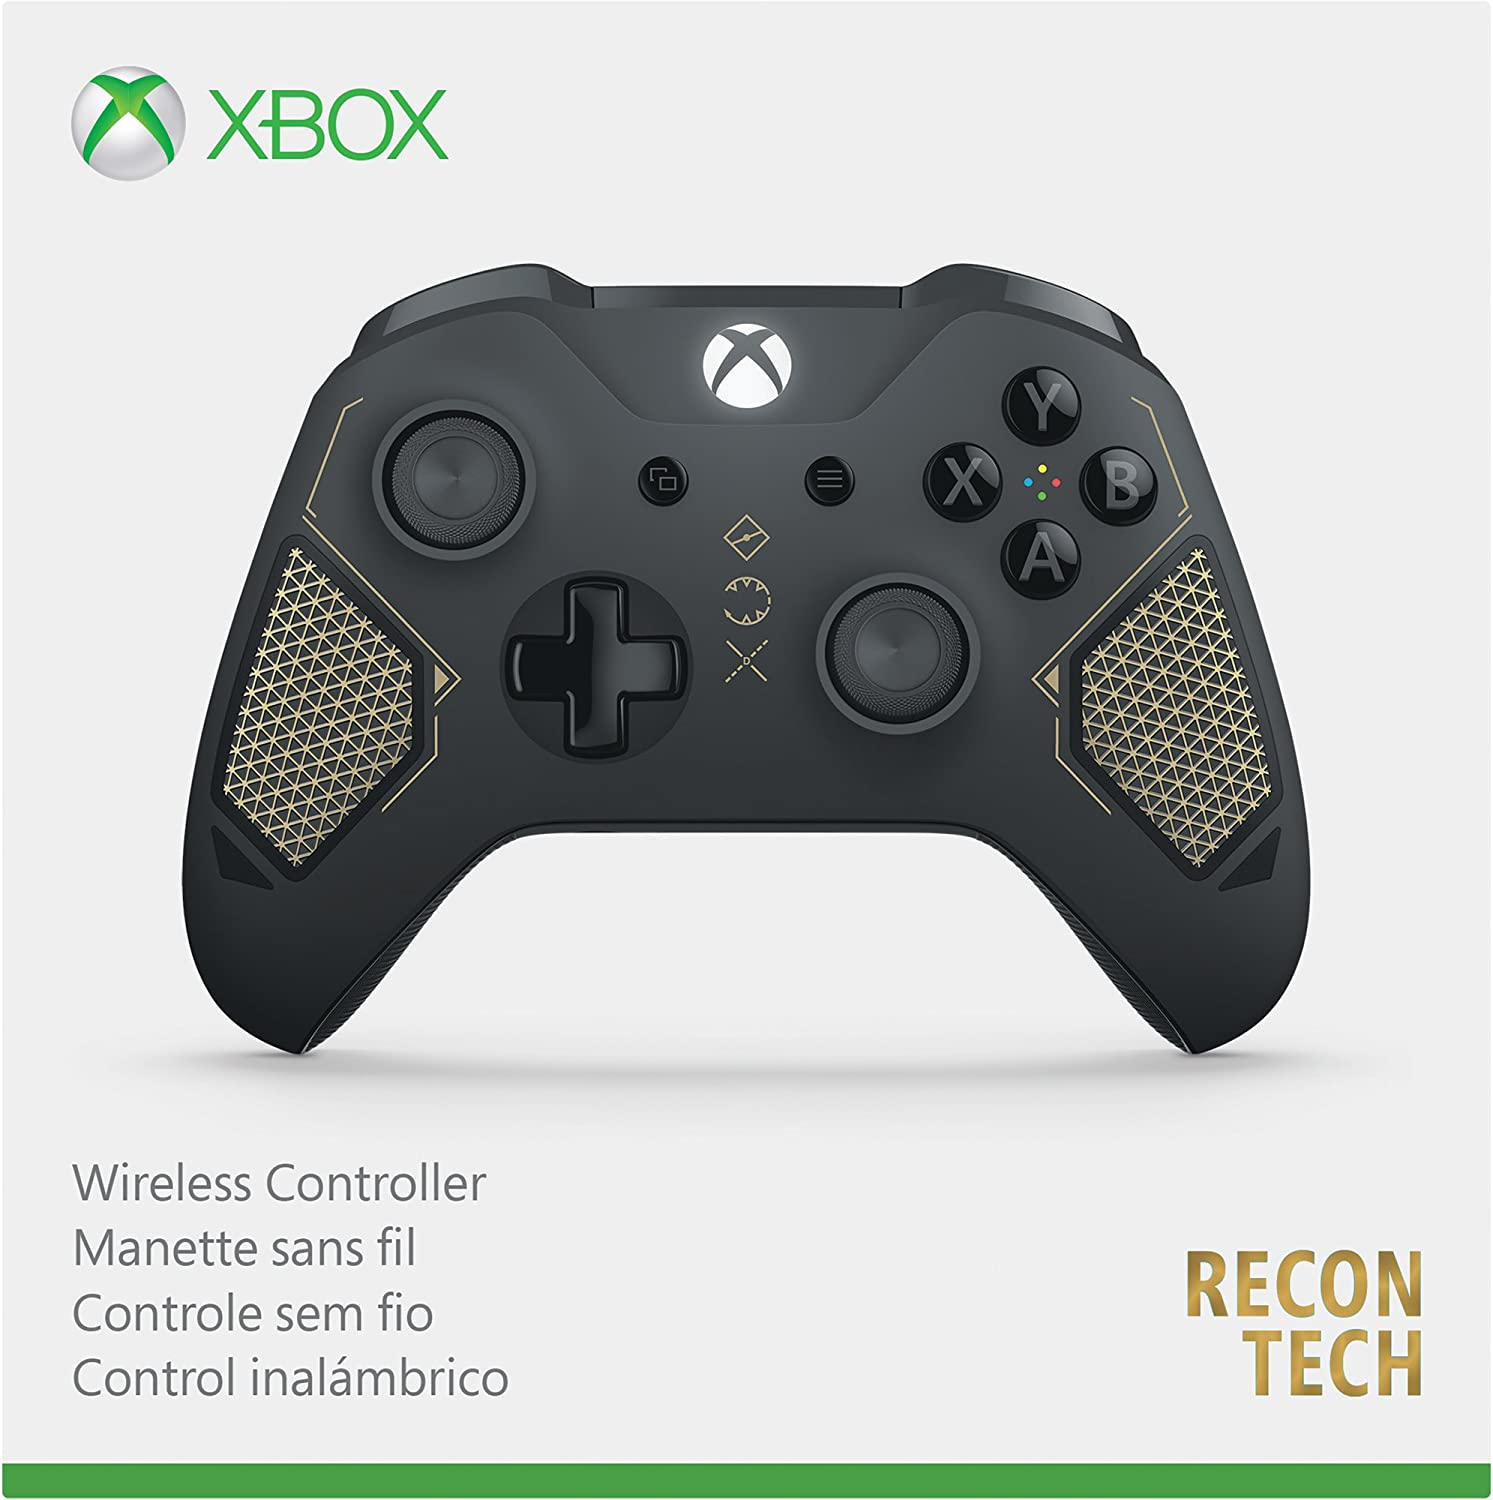 Amazon.com: Xbox Wireless Controller - Recon Tech Special ...